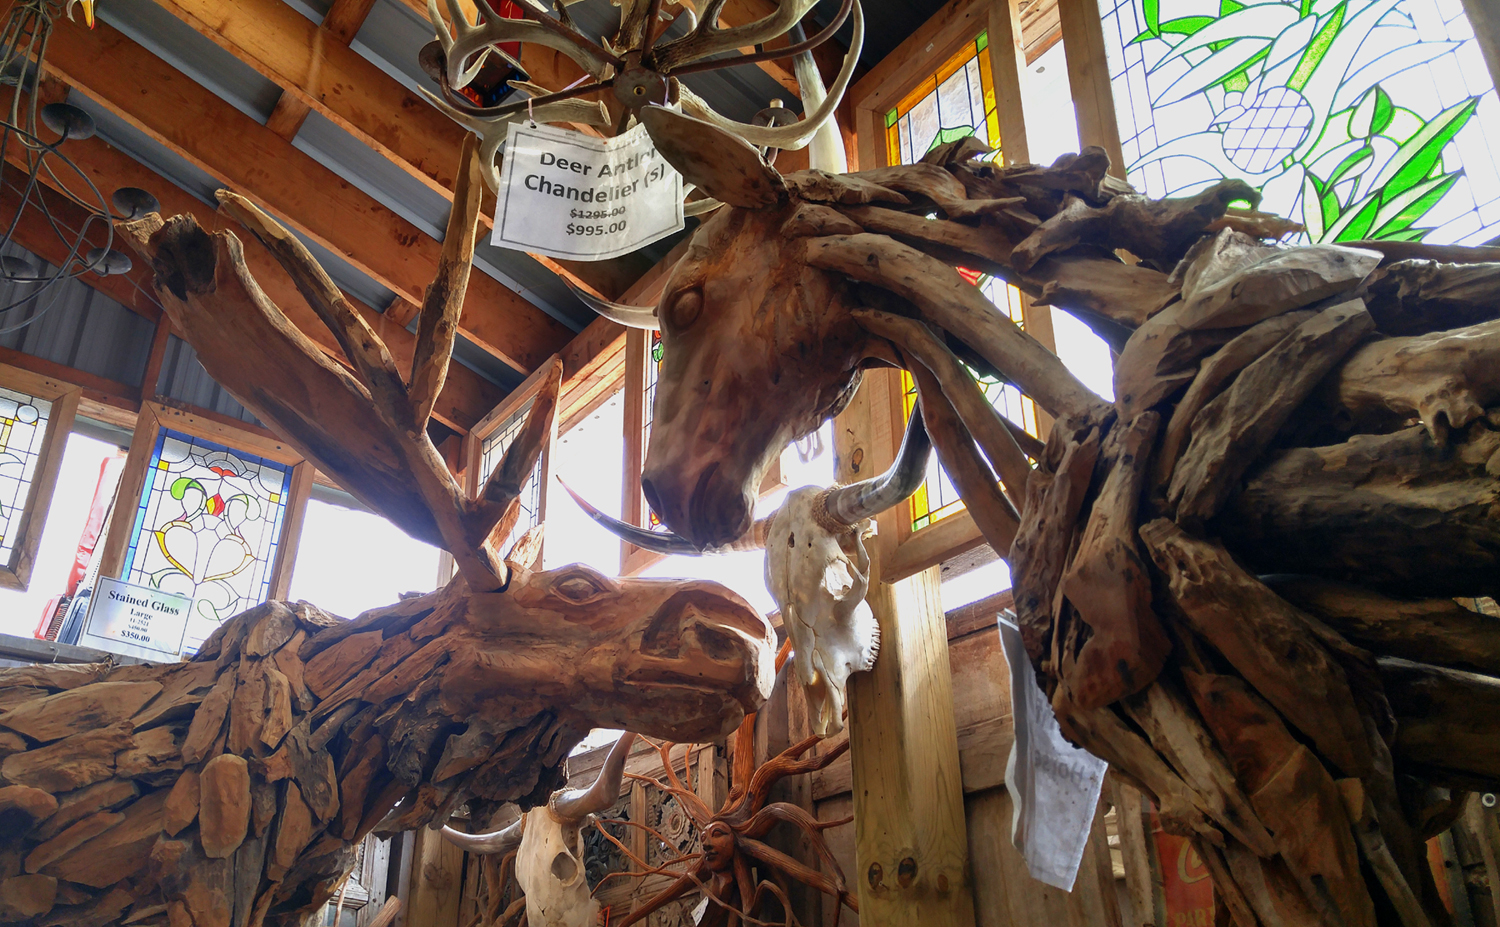 A life-size moose and horse, handmade from driftwood.